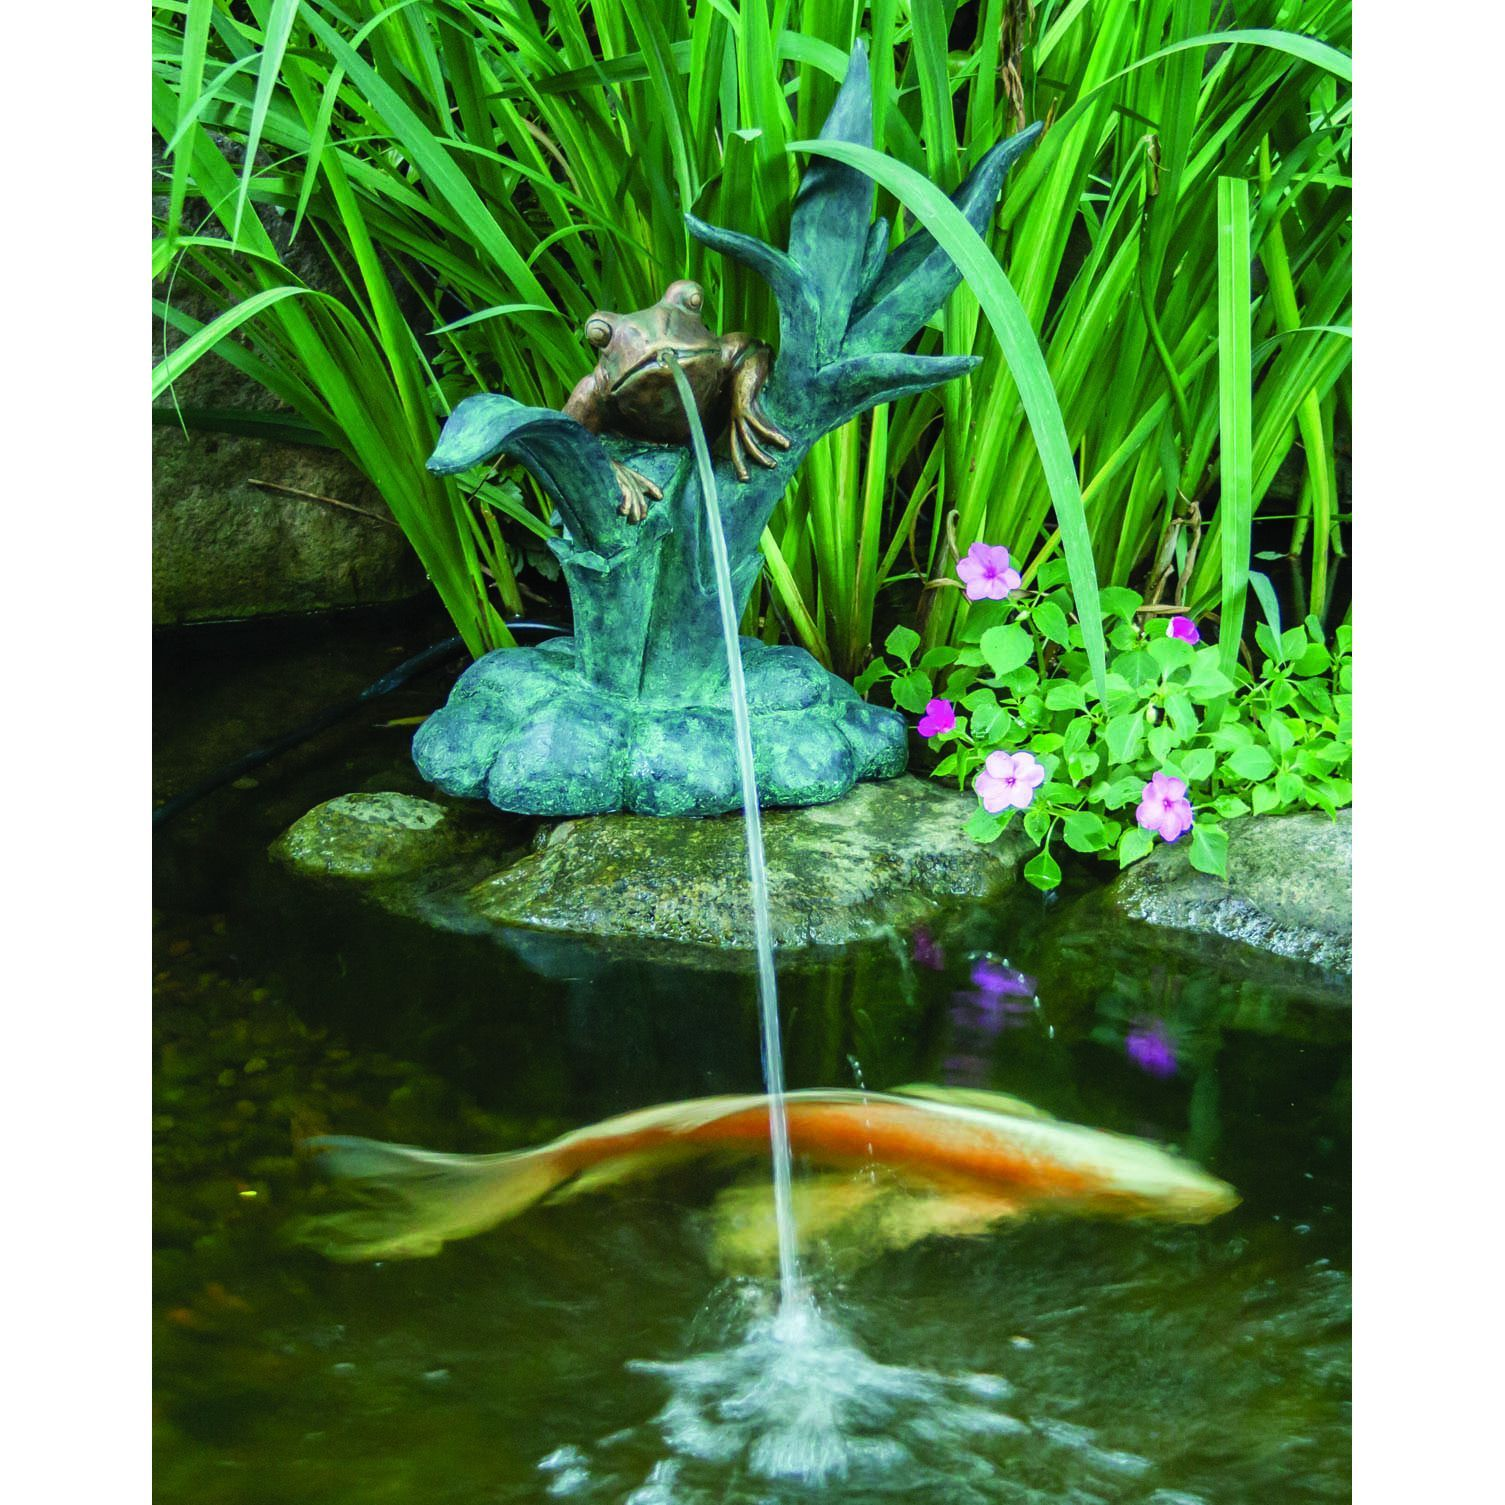 Add A Unique Addition To Your Water Feature With This Decorative Spitter  Fountain. All Aquascape